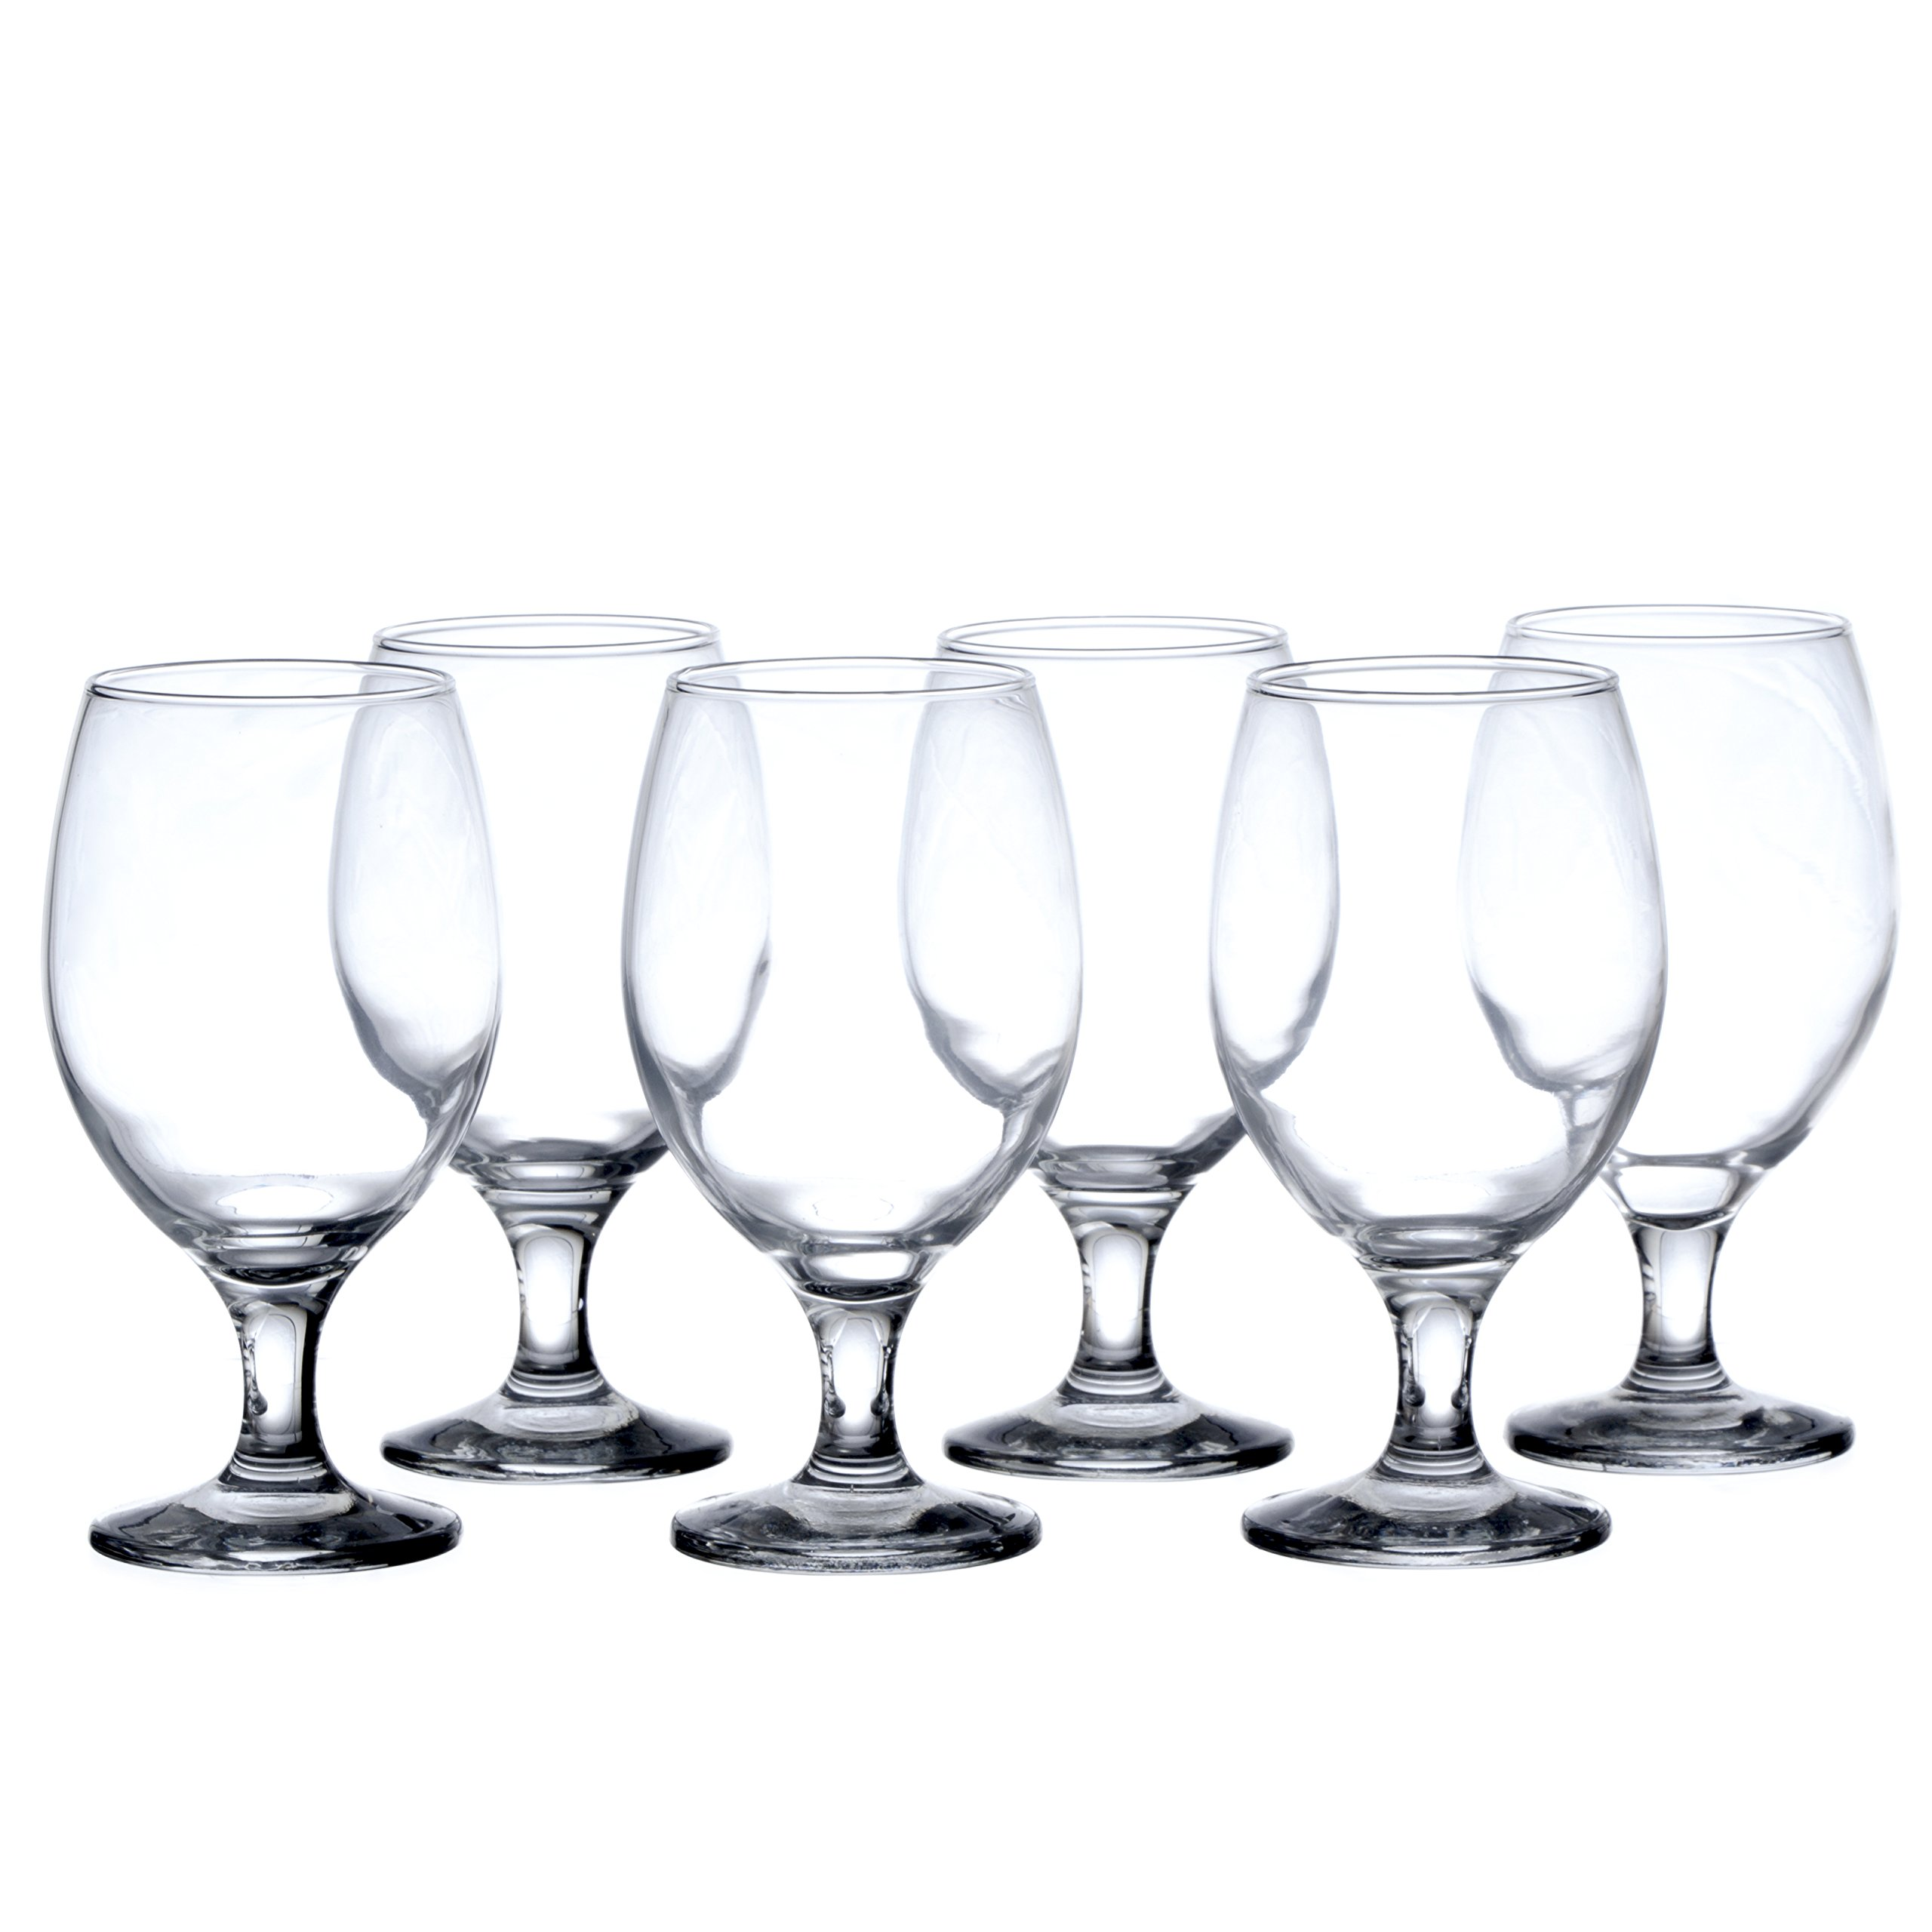 BISTRO 12-Piece Water/Beverage Glasses Set, 13.5 Oz, Durable Tempered Glass, Restaurant&Hotel Quality